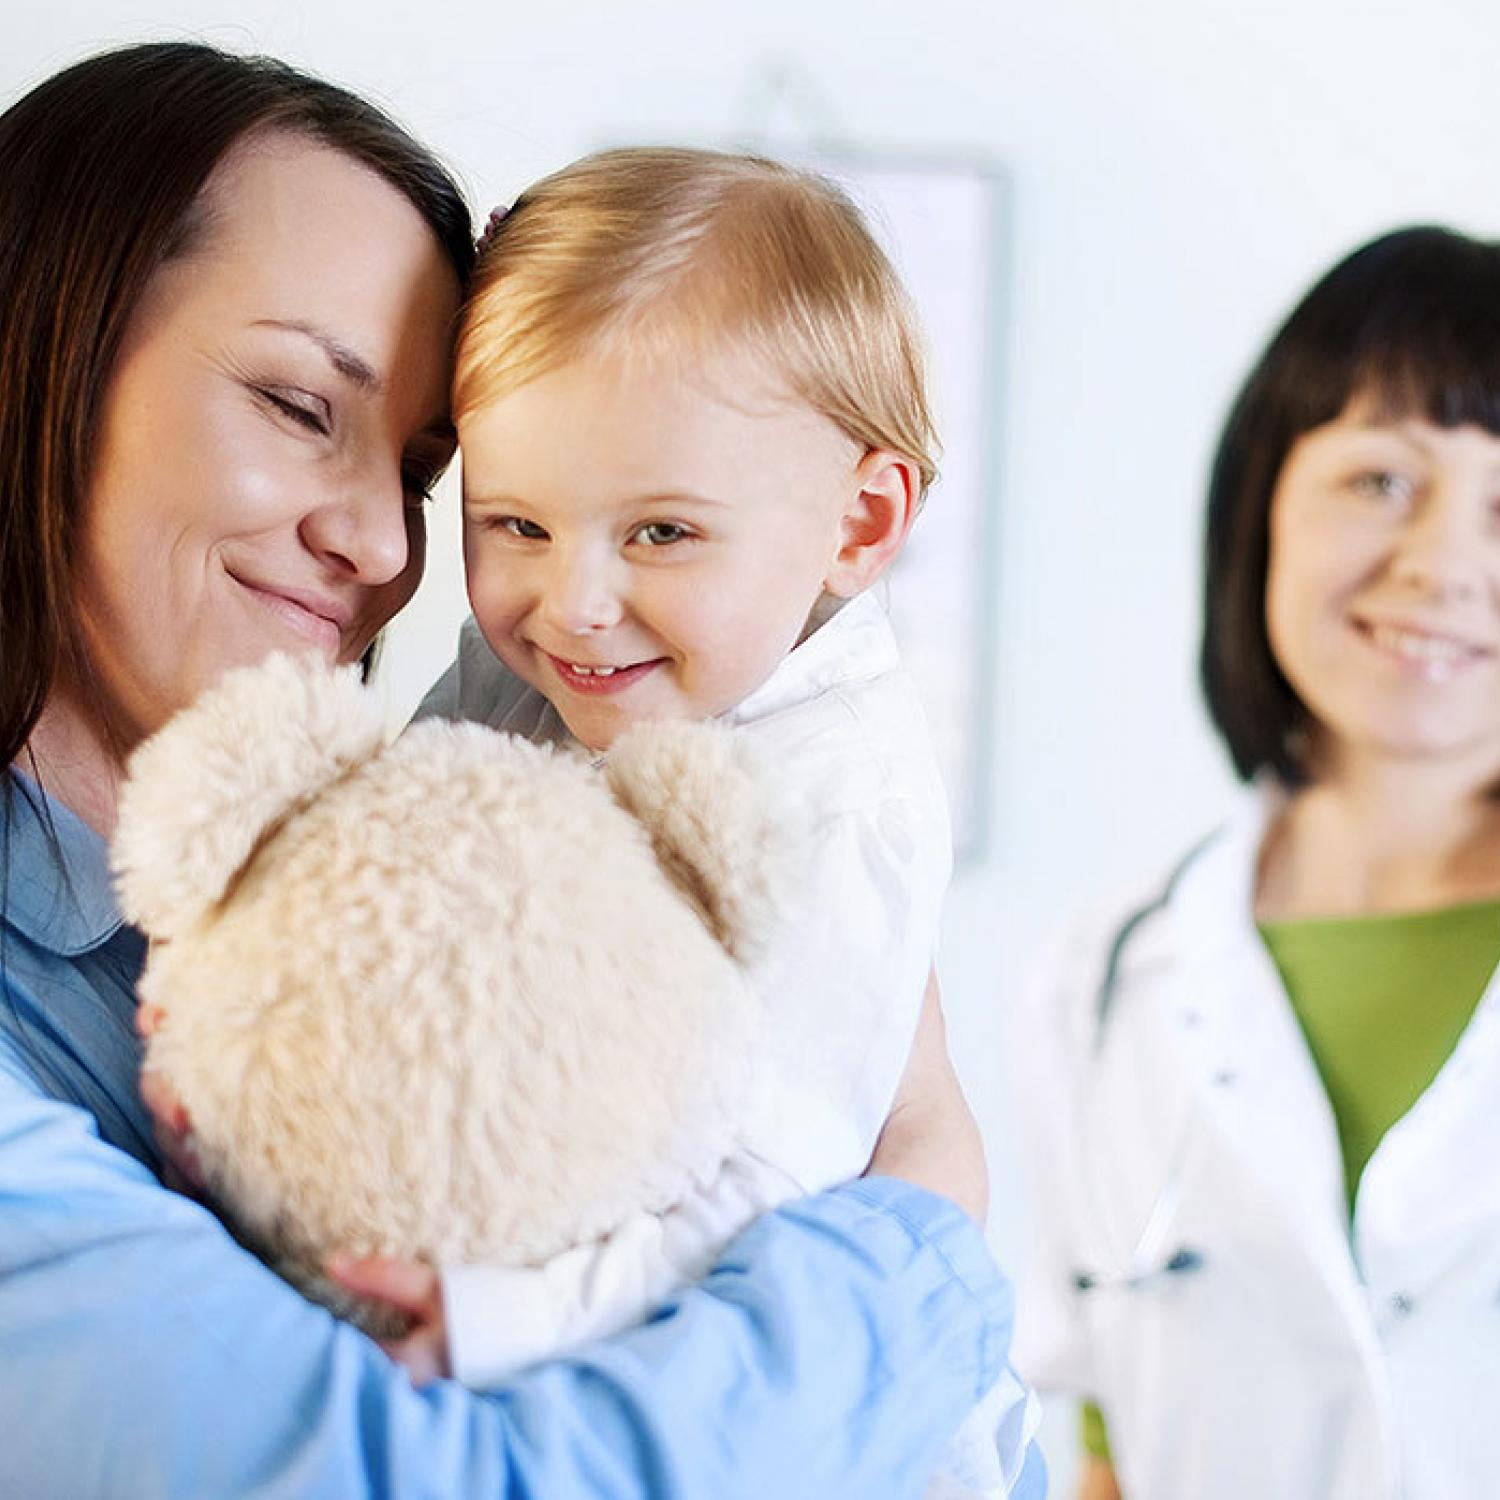 Watch Songs can Reduce Pain in Kids after Surgery video